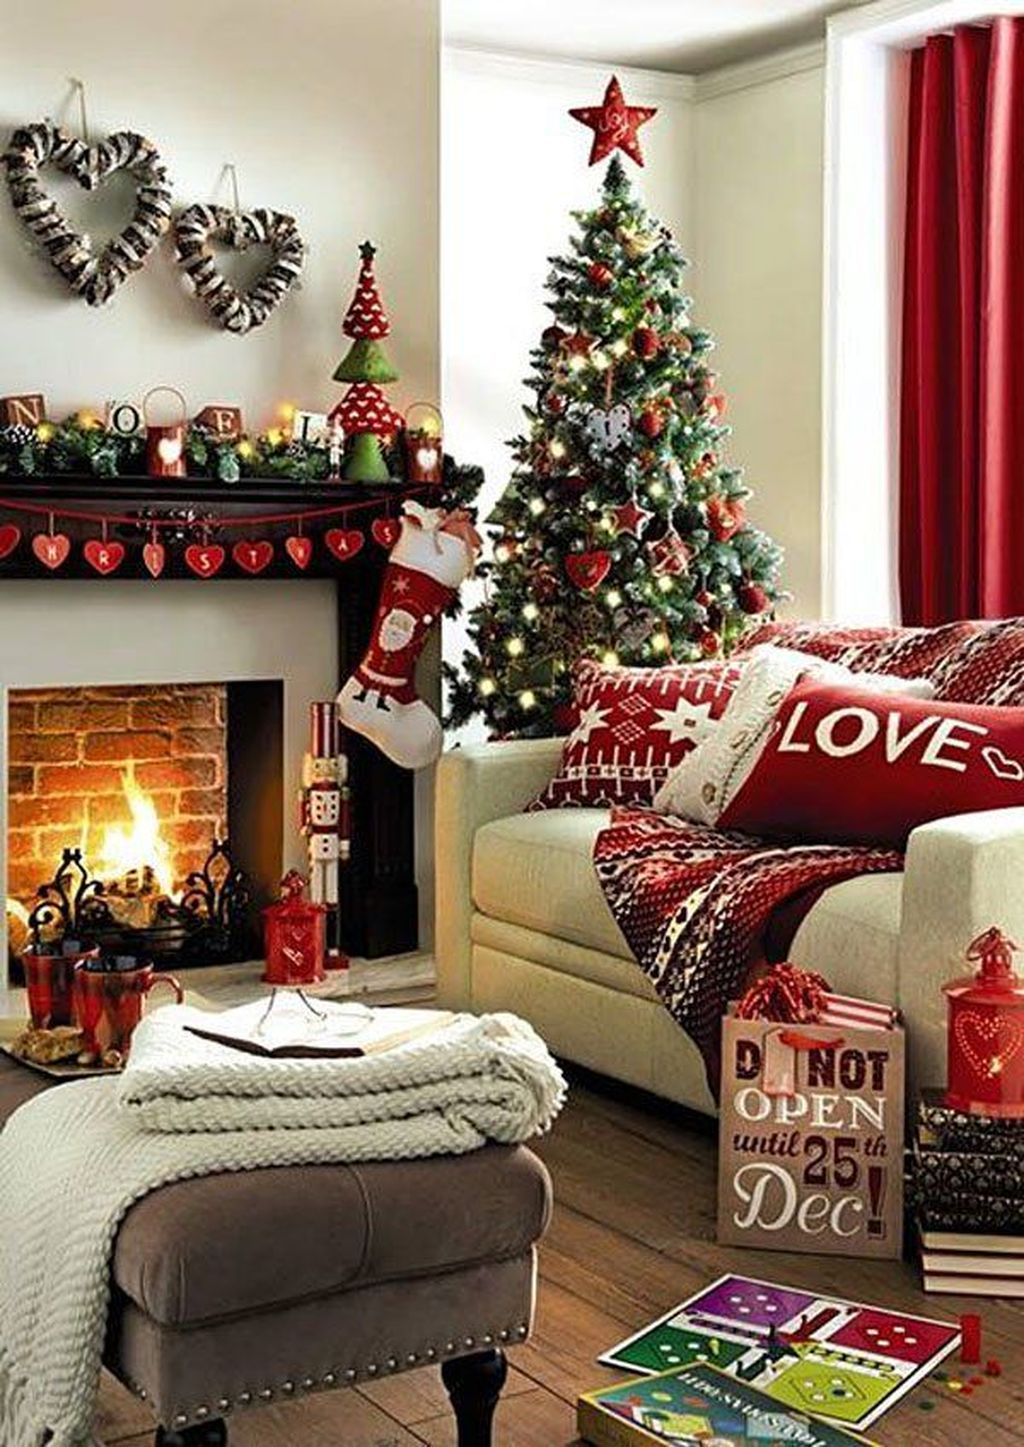 55 Small Apartment Christmas Tree Living Room Decor Ideas #smallapartmentchristmasdecor